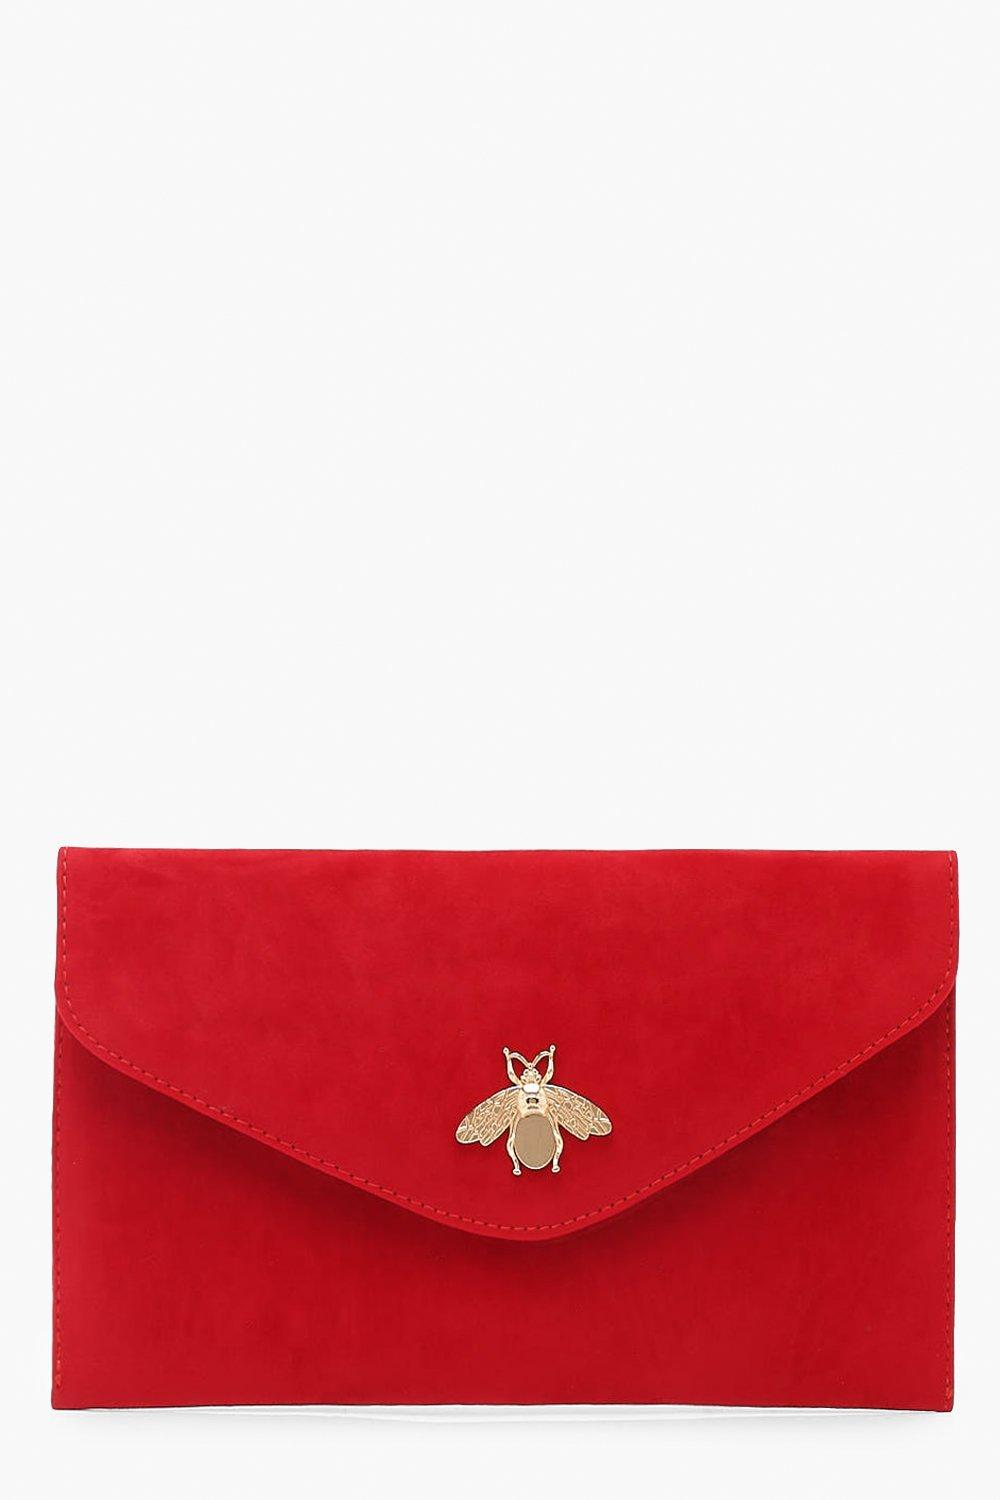 boohoo Womens Metal Bug Envelop Clutch Bag - Red - One Size, Red